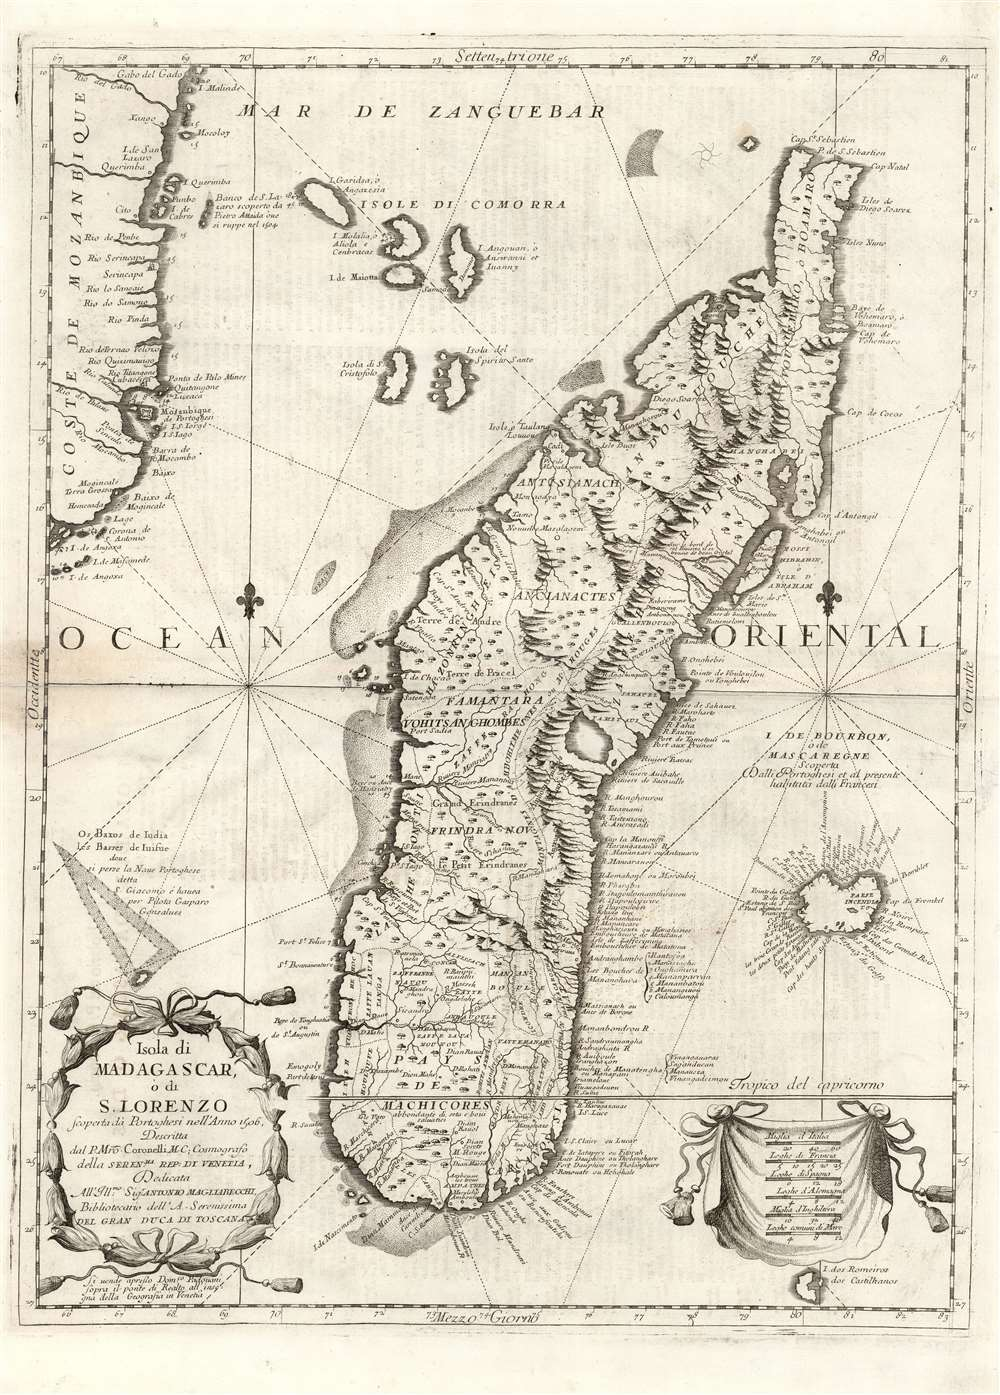 1697 Coronelli Map of Madagascar and part of Southern Africa